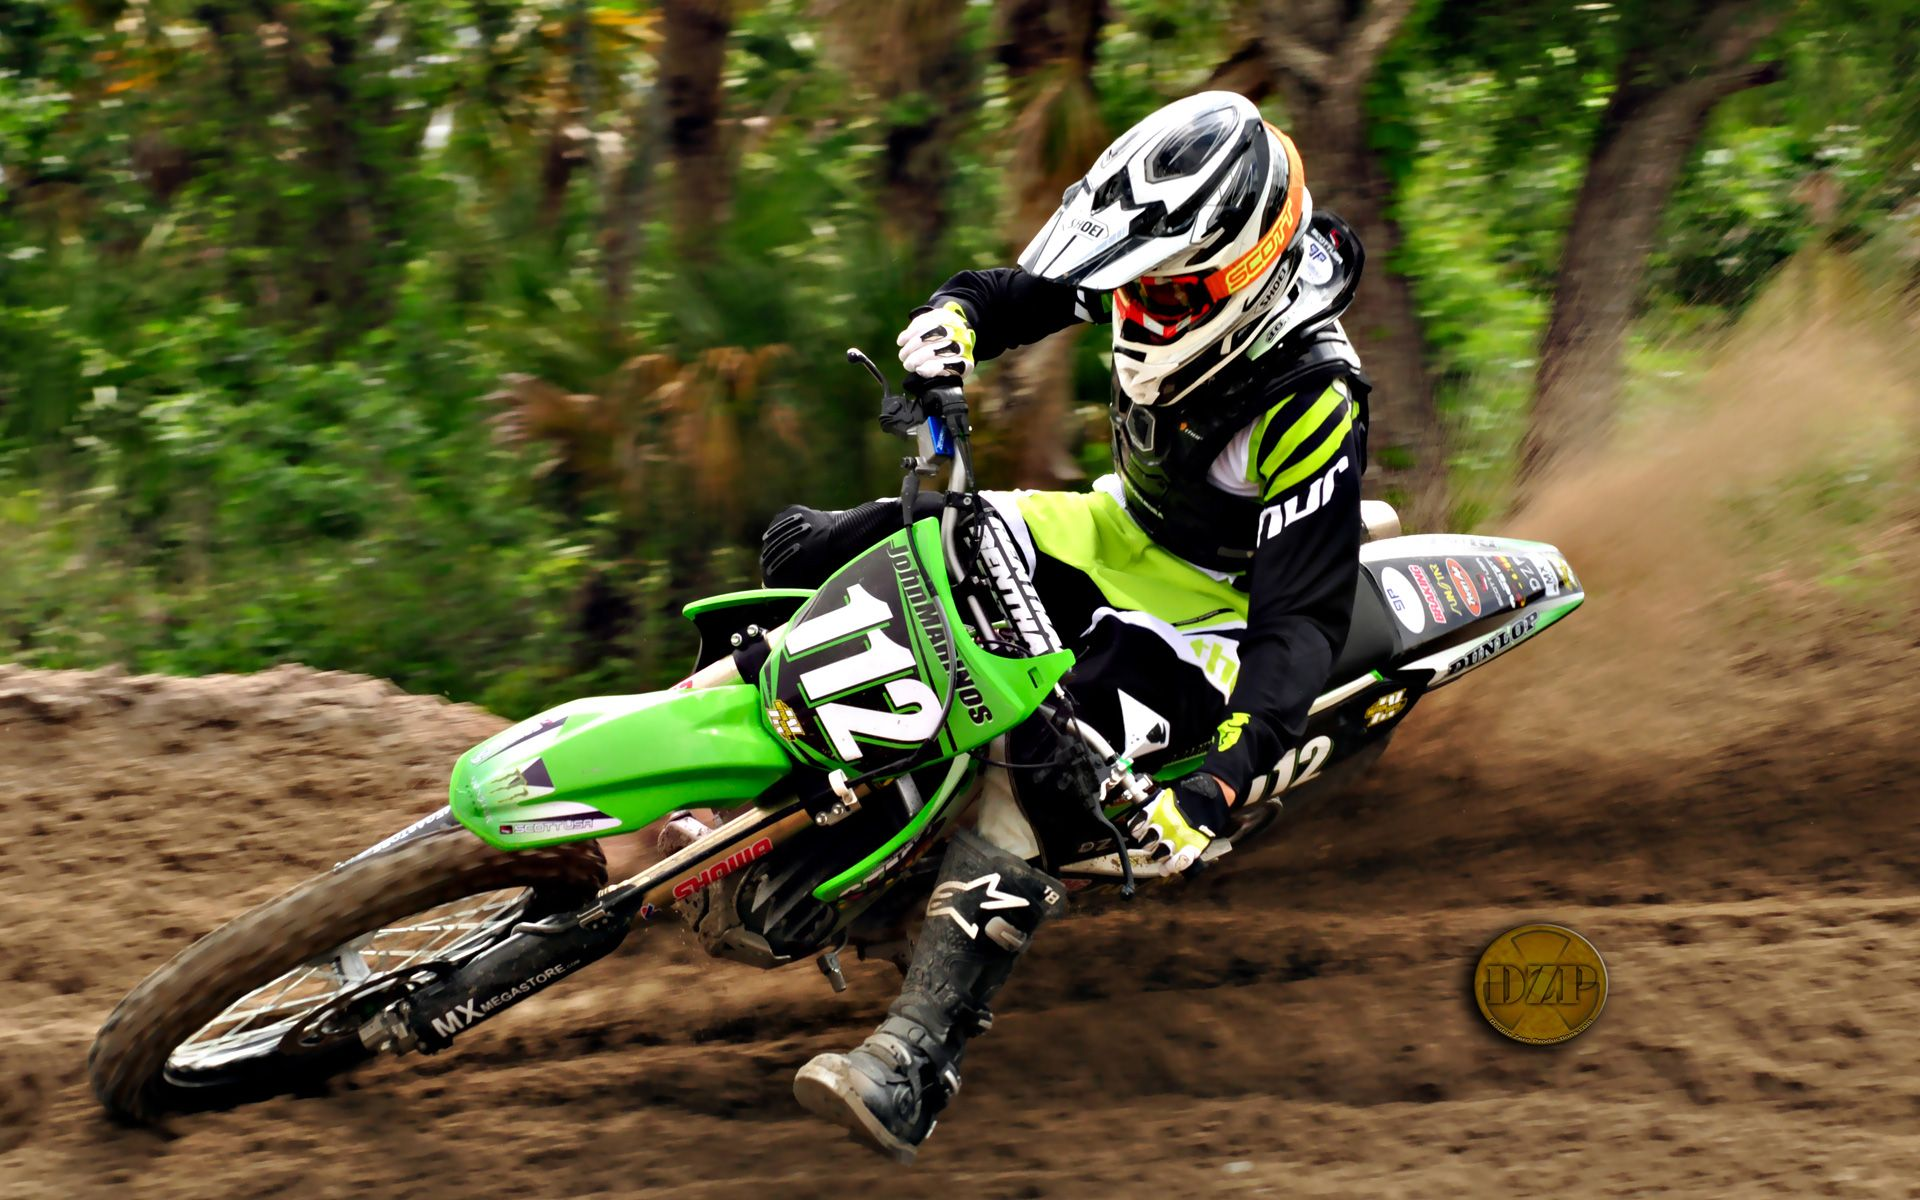 Motocross Hd Live Wallpaper Android Apps On Google Play 20151343